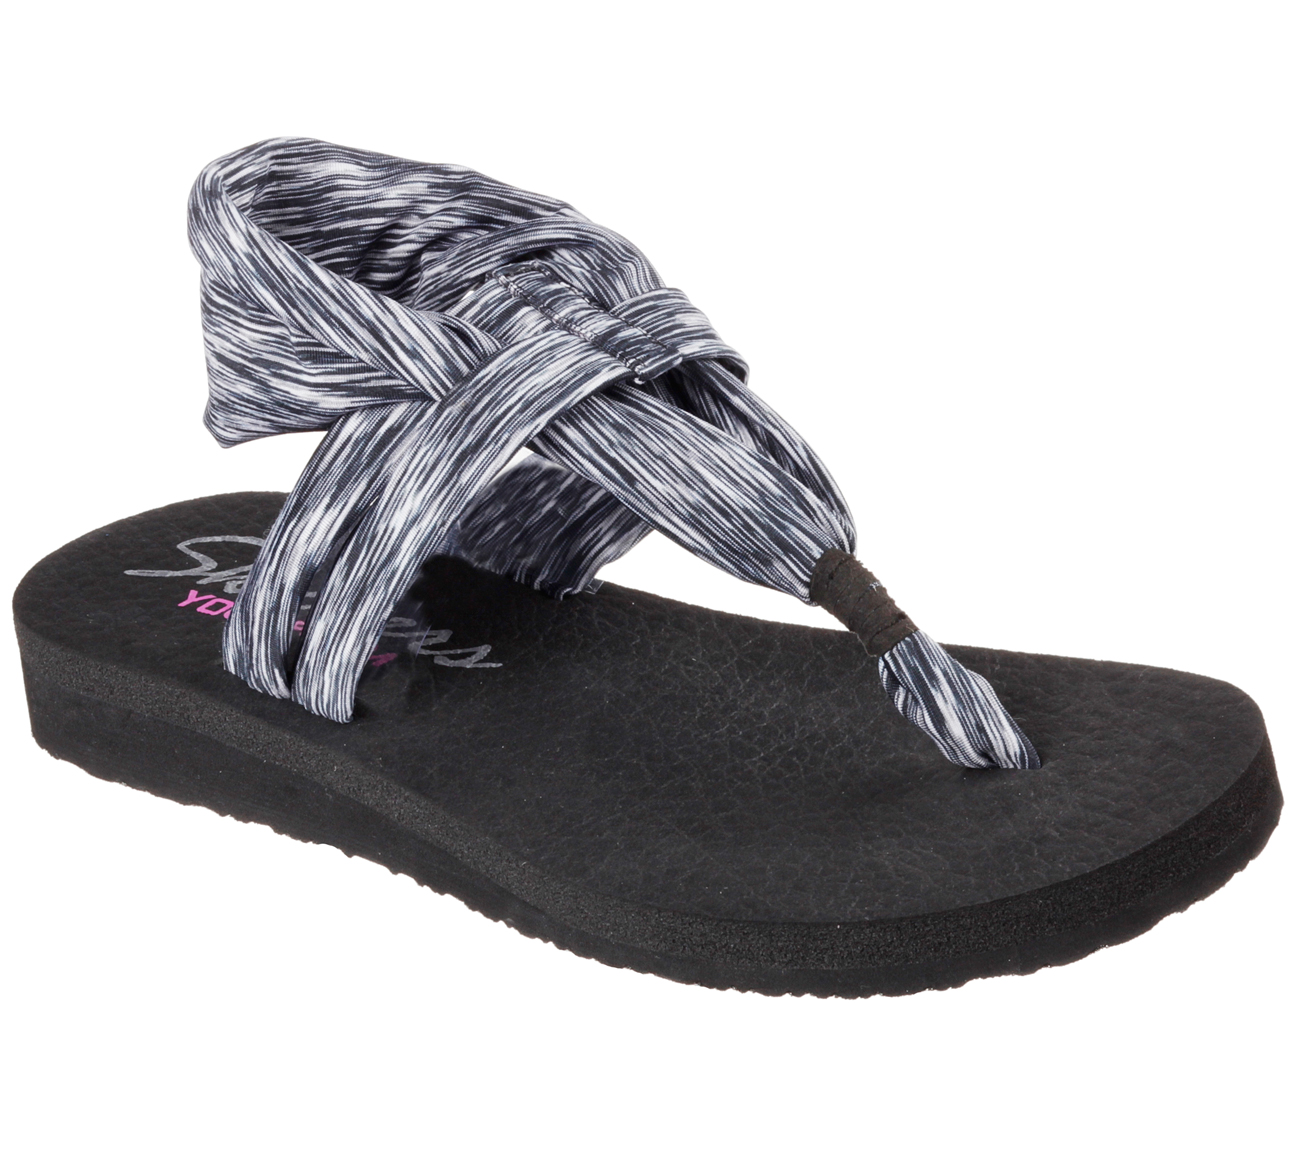 Yoga Shoes Skechers: Serene Comfort Sandals Shoes